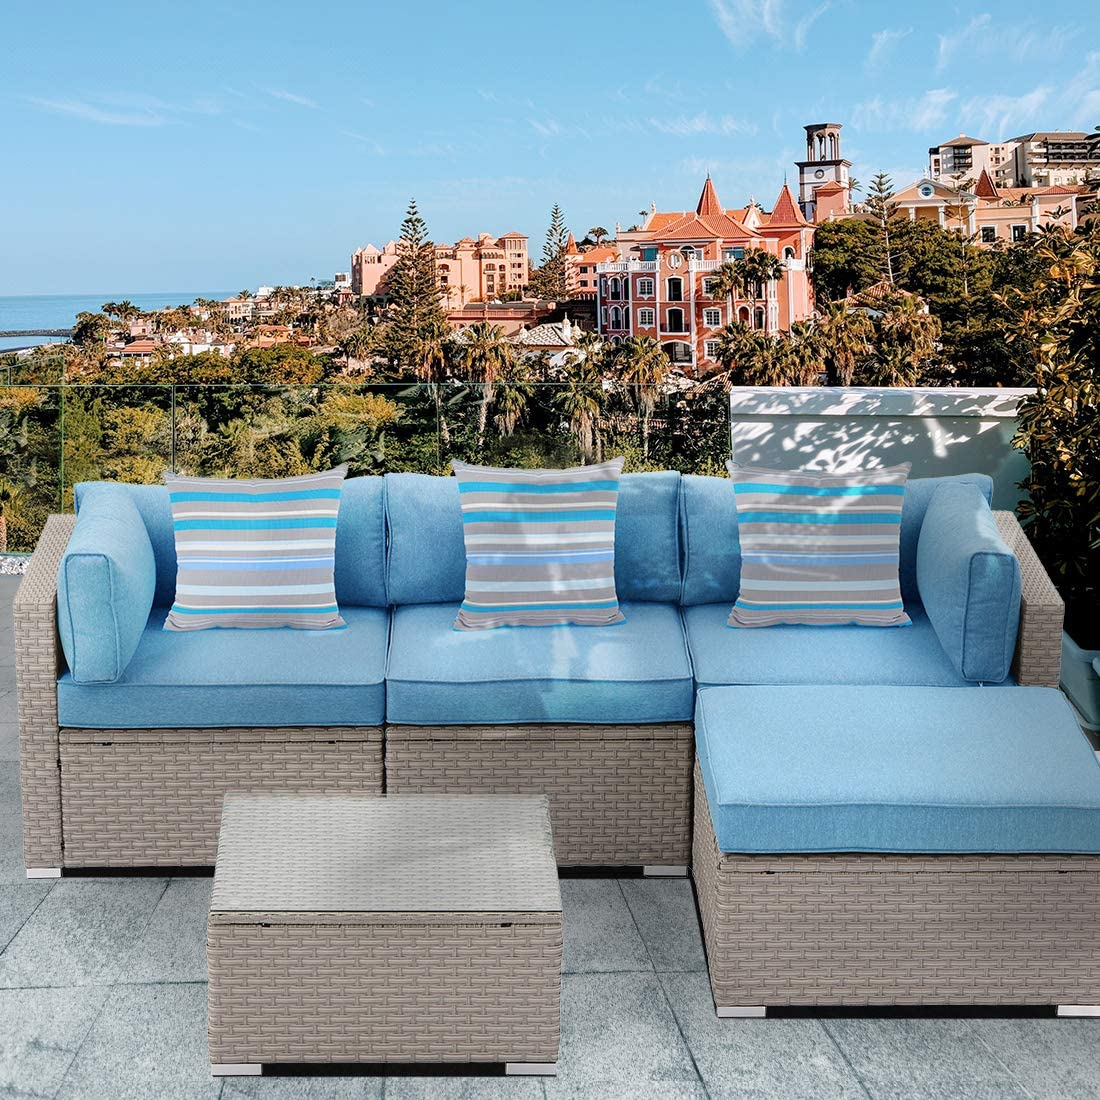 HOMPUS Outdoor Sectional Sofa 5-Piece All Weather Patio Handwoven Wicker Furniture Set w Royal Blue Seat Cushions, Glass Coffee Table, 3 Blue Pillows for Garden